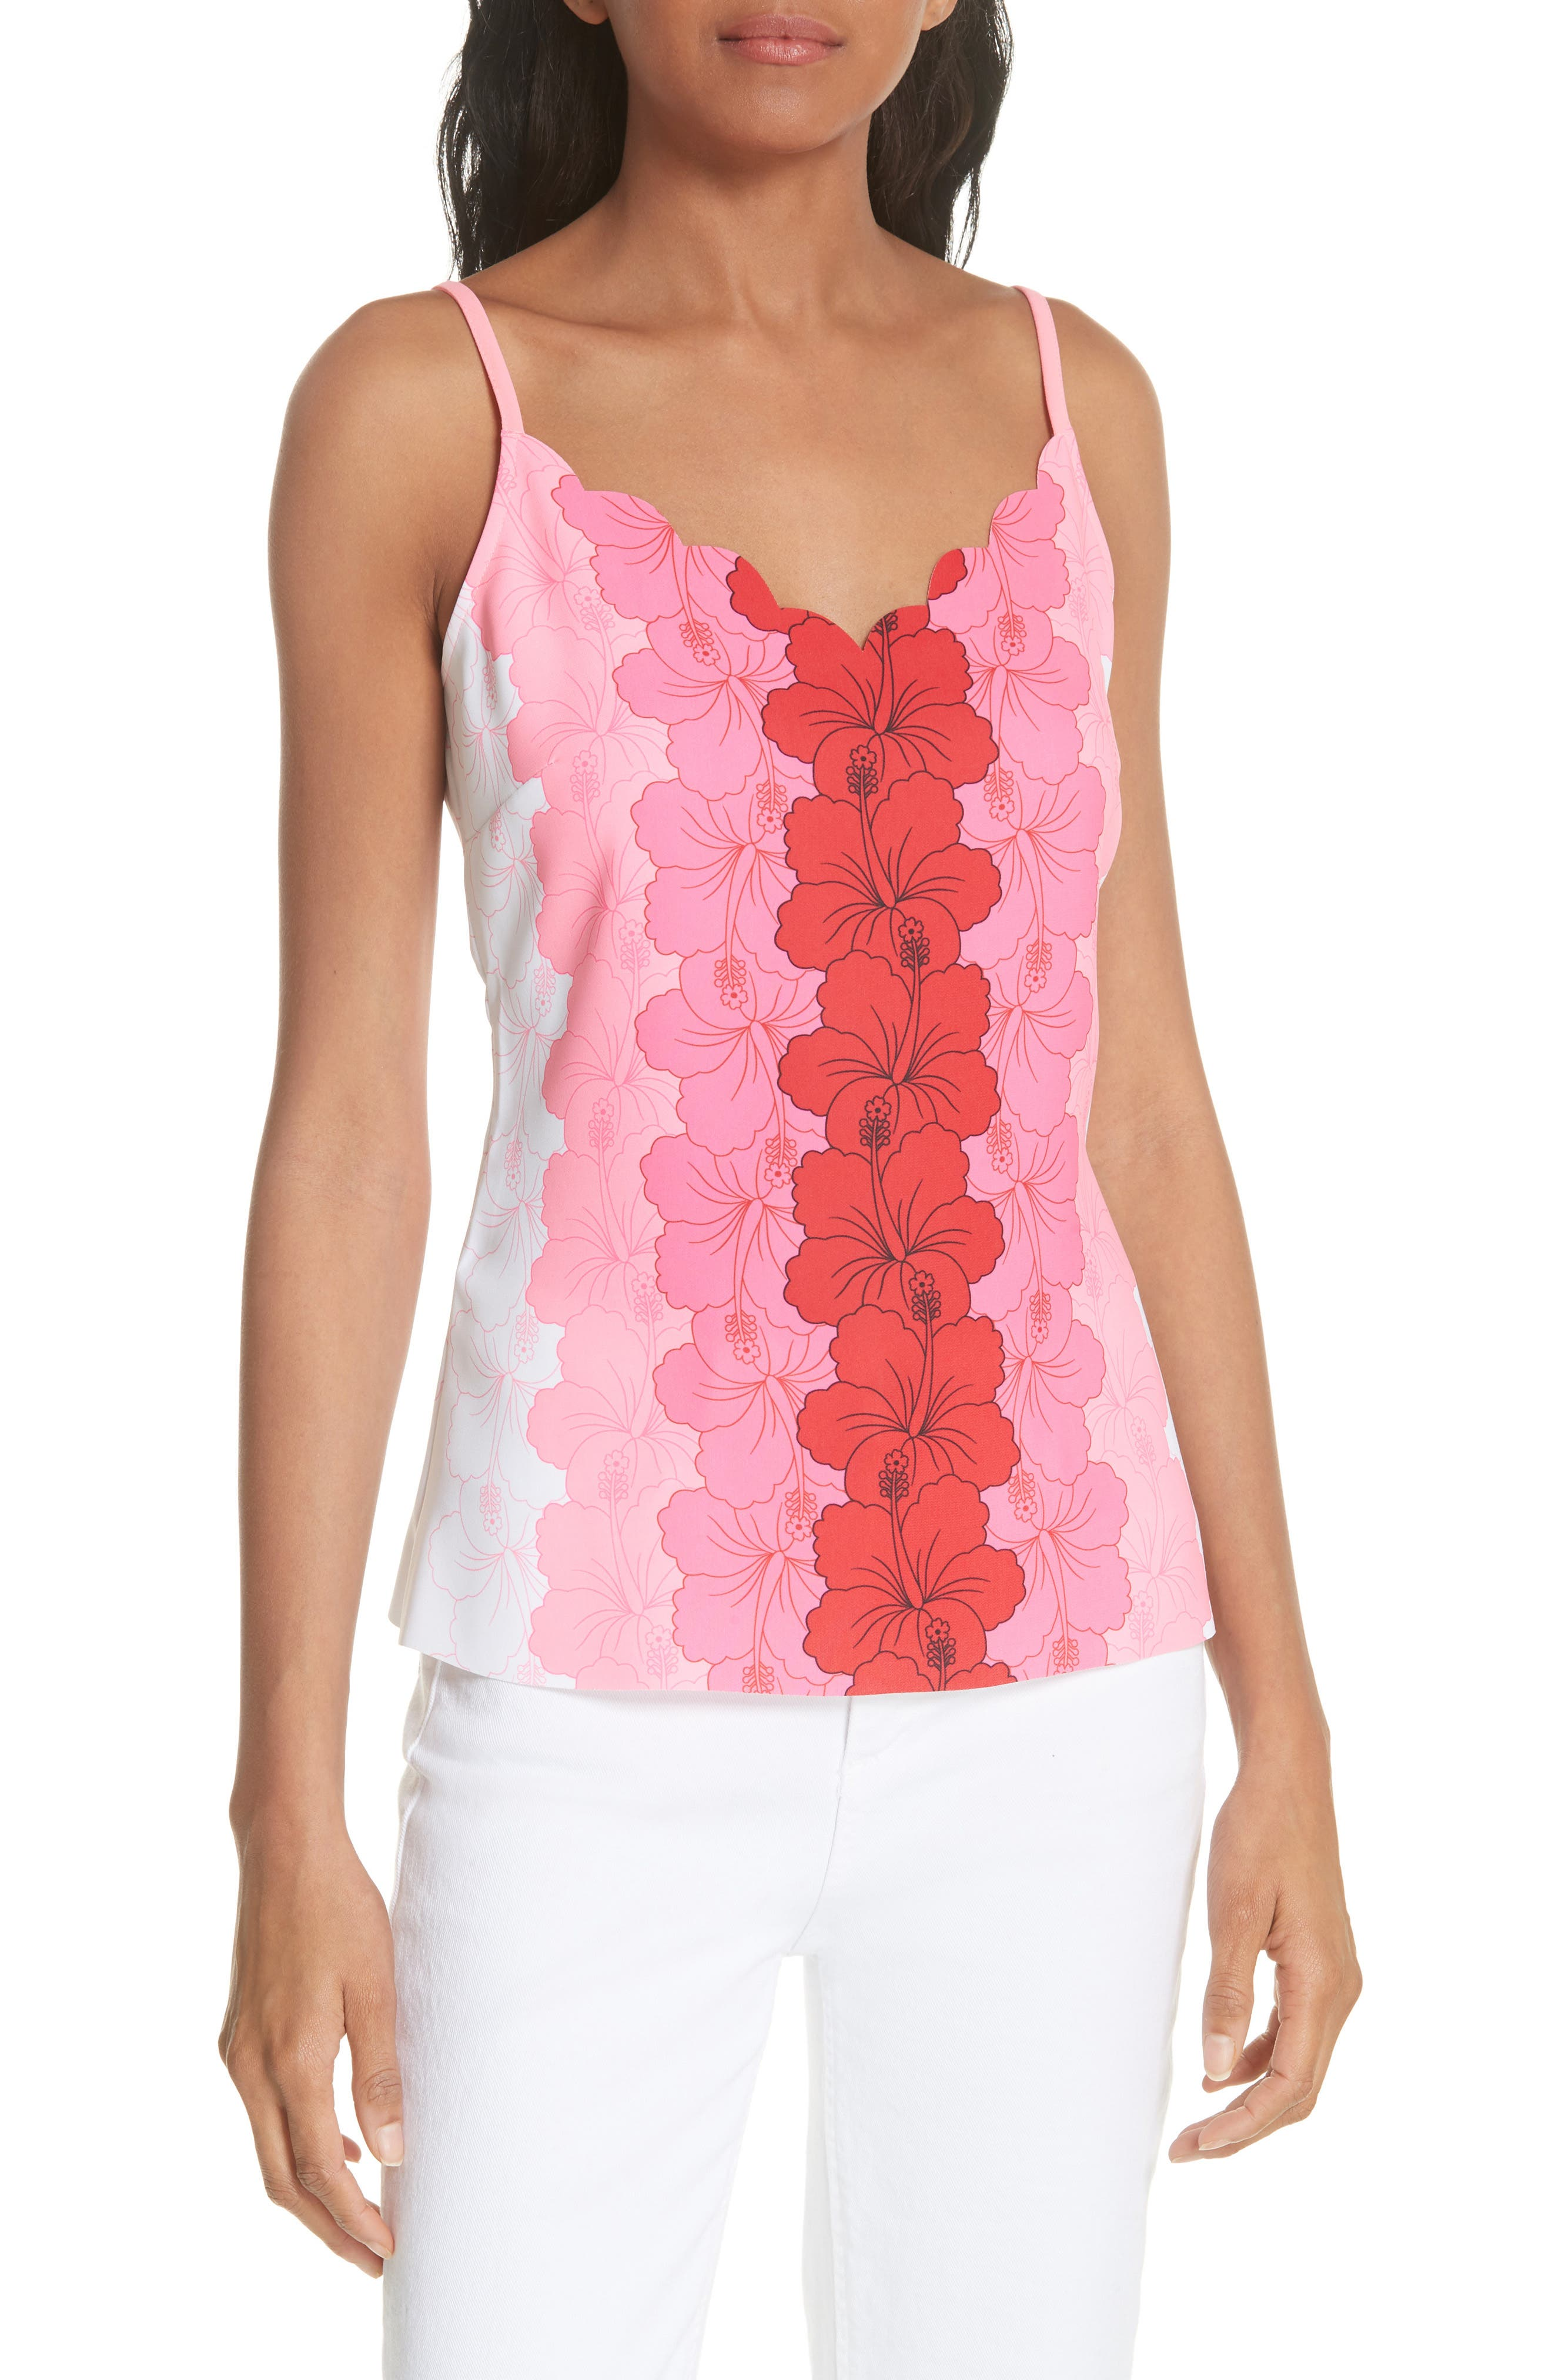 TED BAKER LONDON,                             Romaa Happiness Camisole,                             Main thumbnail 1, color,                             671